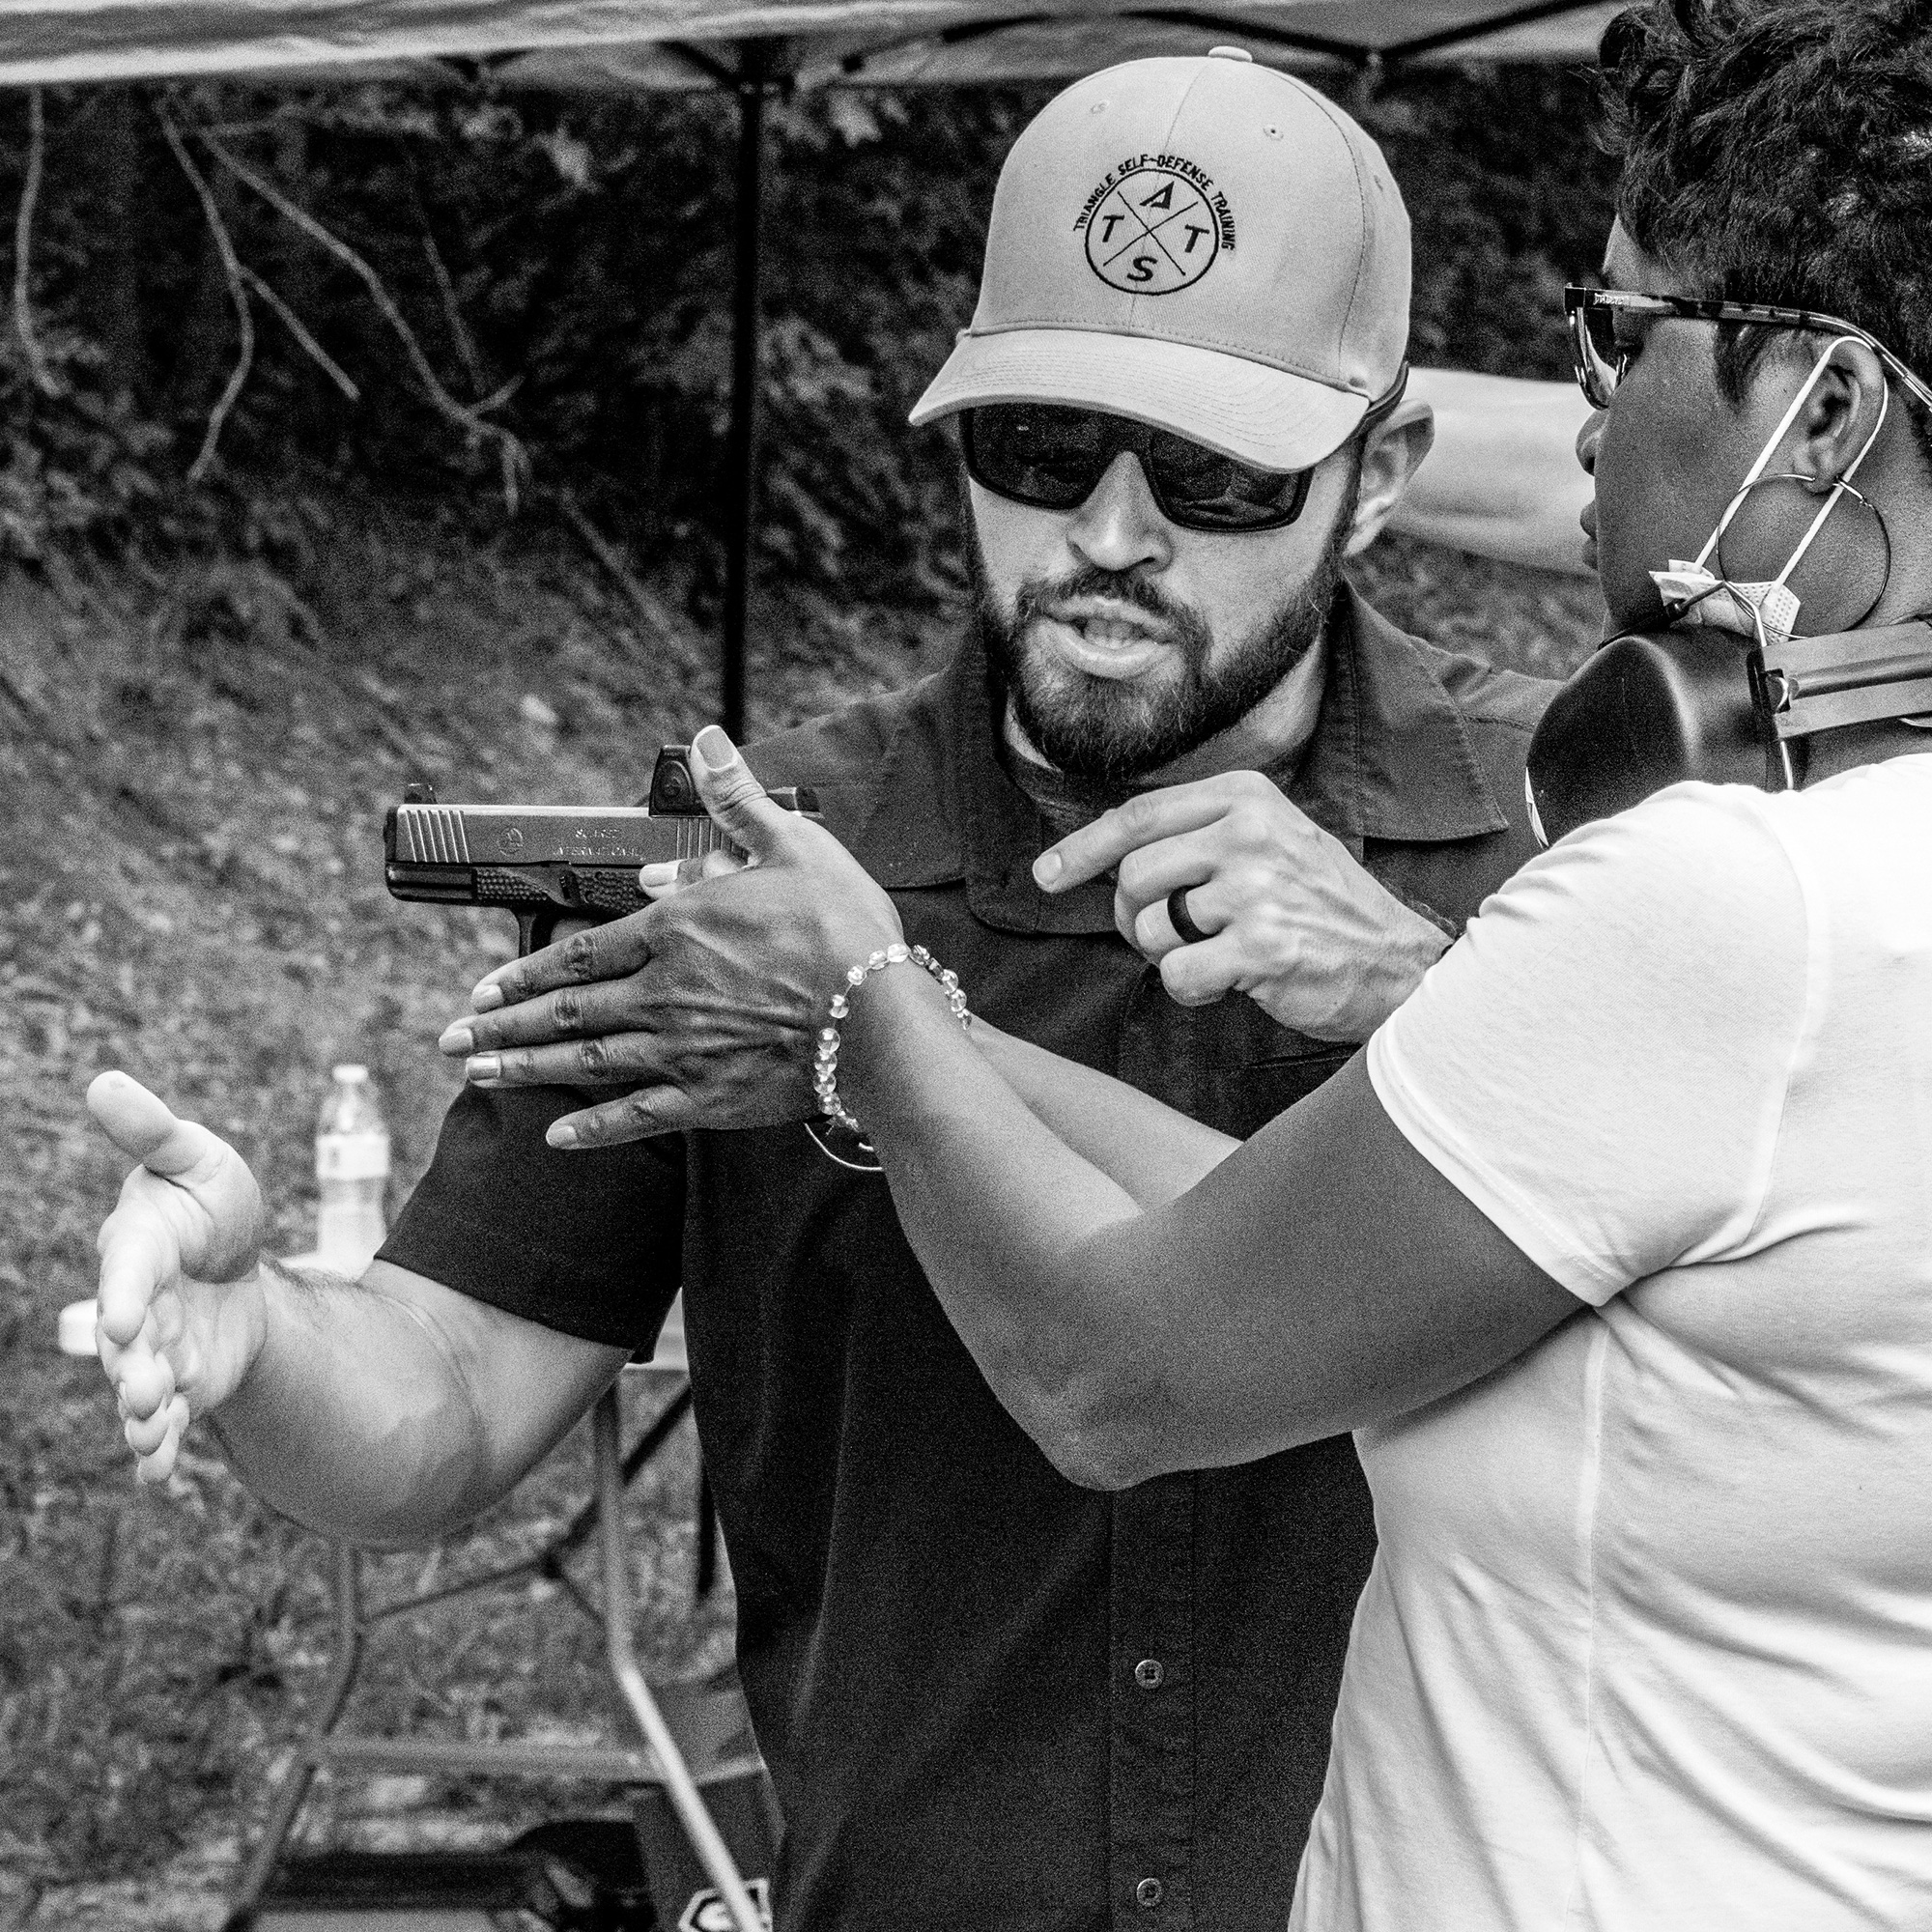 Teaching dry fire to female concealed carry student